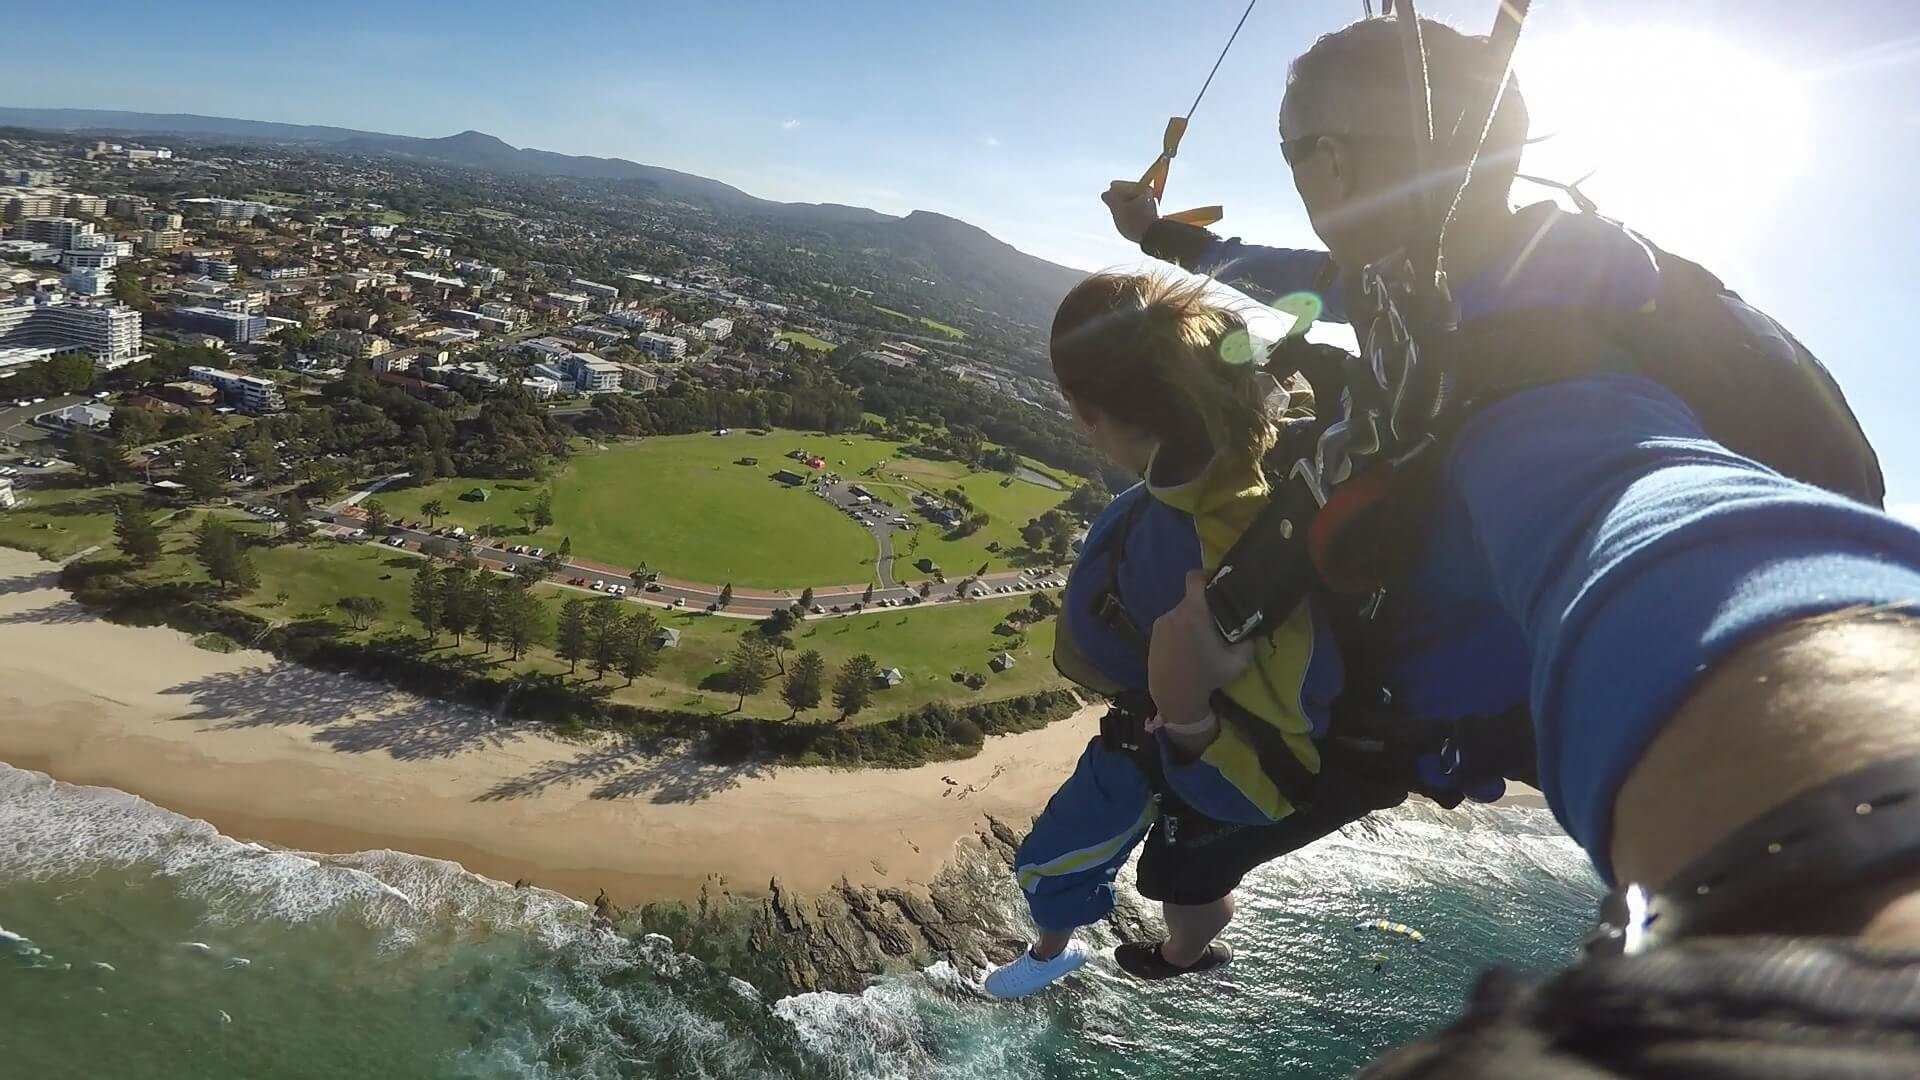 under30experiences-blog-why-you-should-travel-skydiving-australia-wollongong-sydney